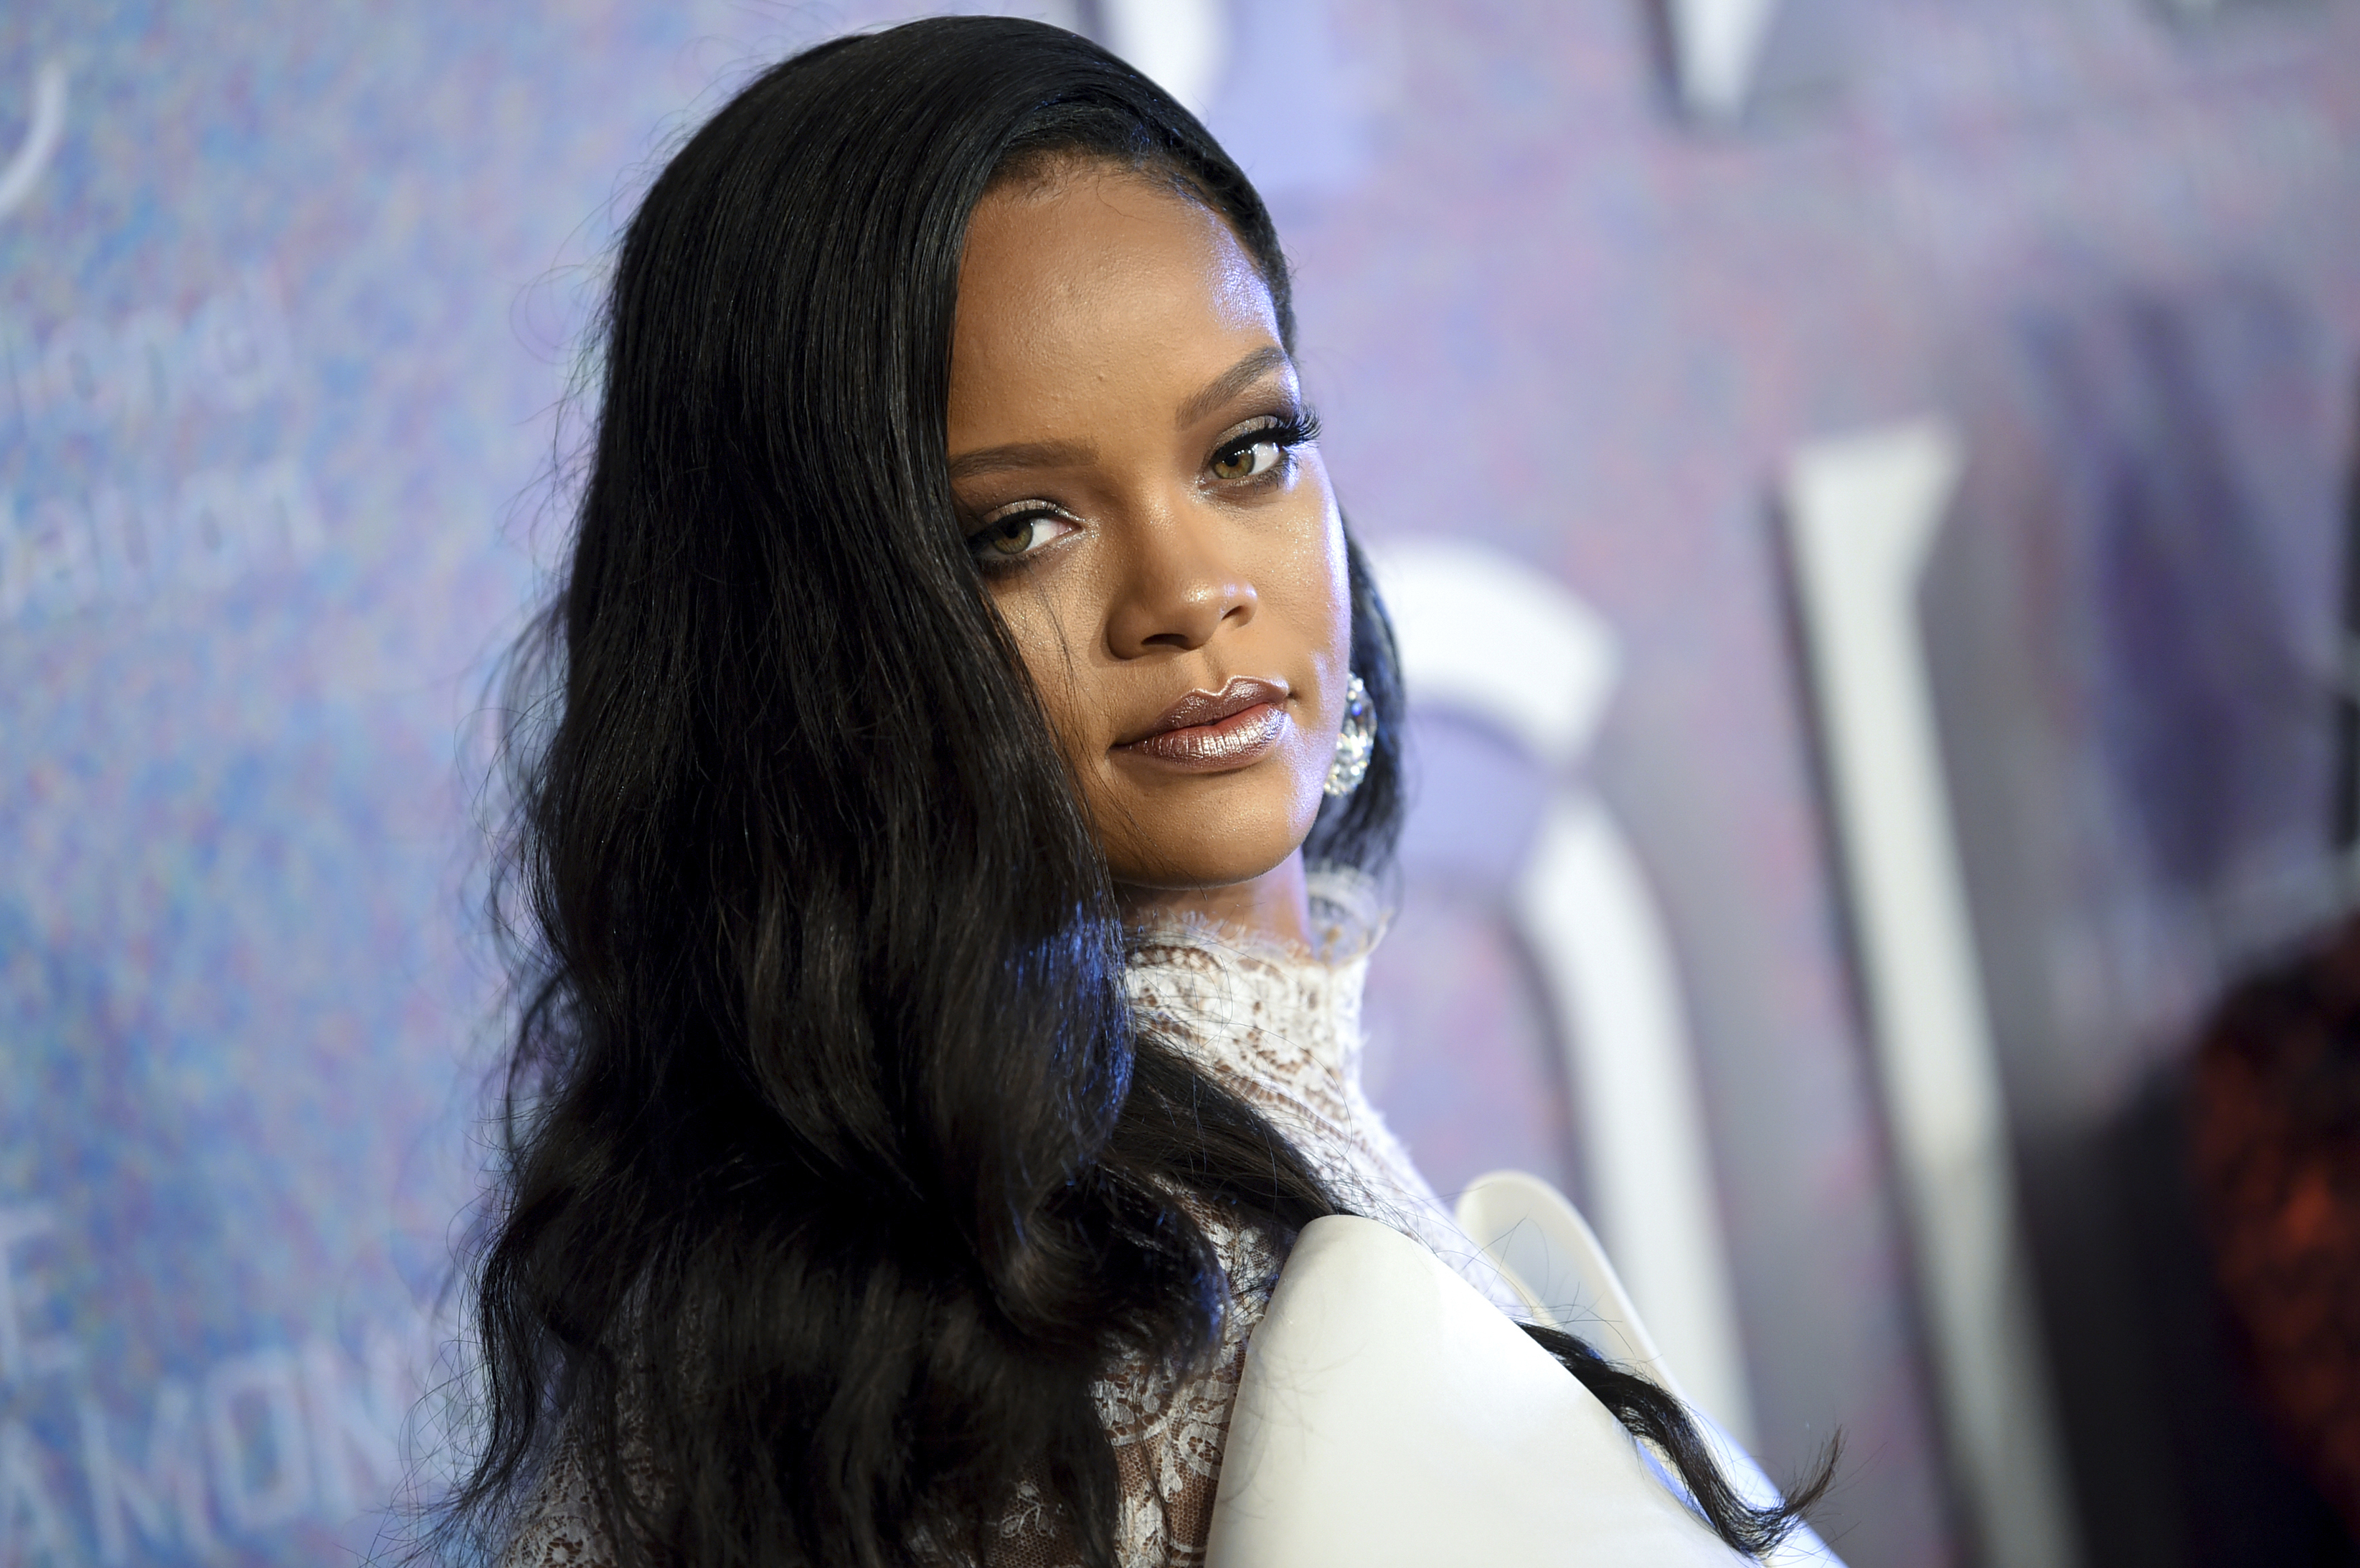 ebbf329d45 Rihanna is joining a luxury fashion house. But does Rihanna need luxe